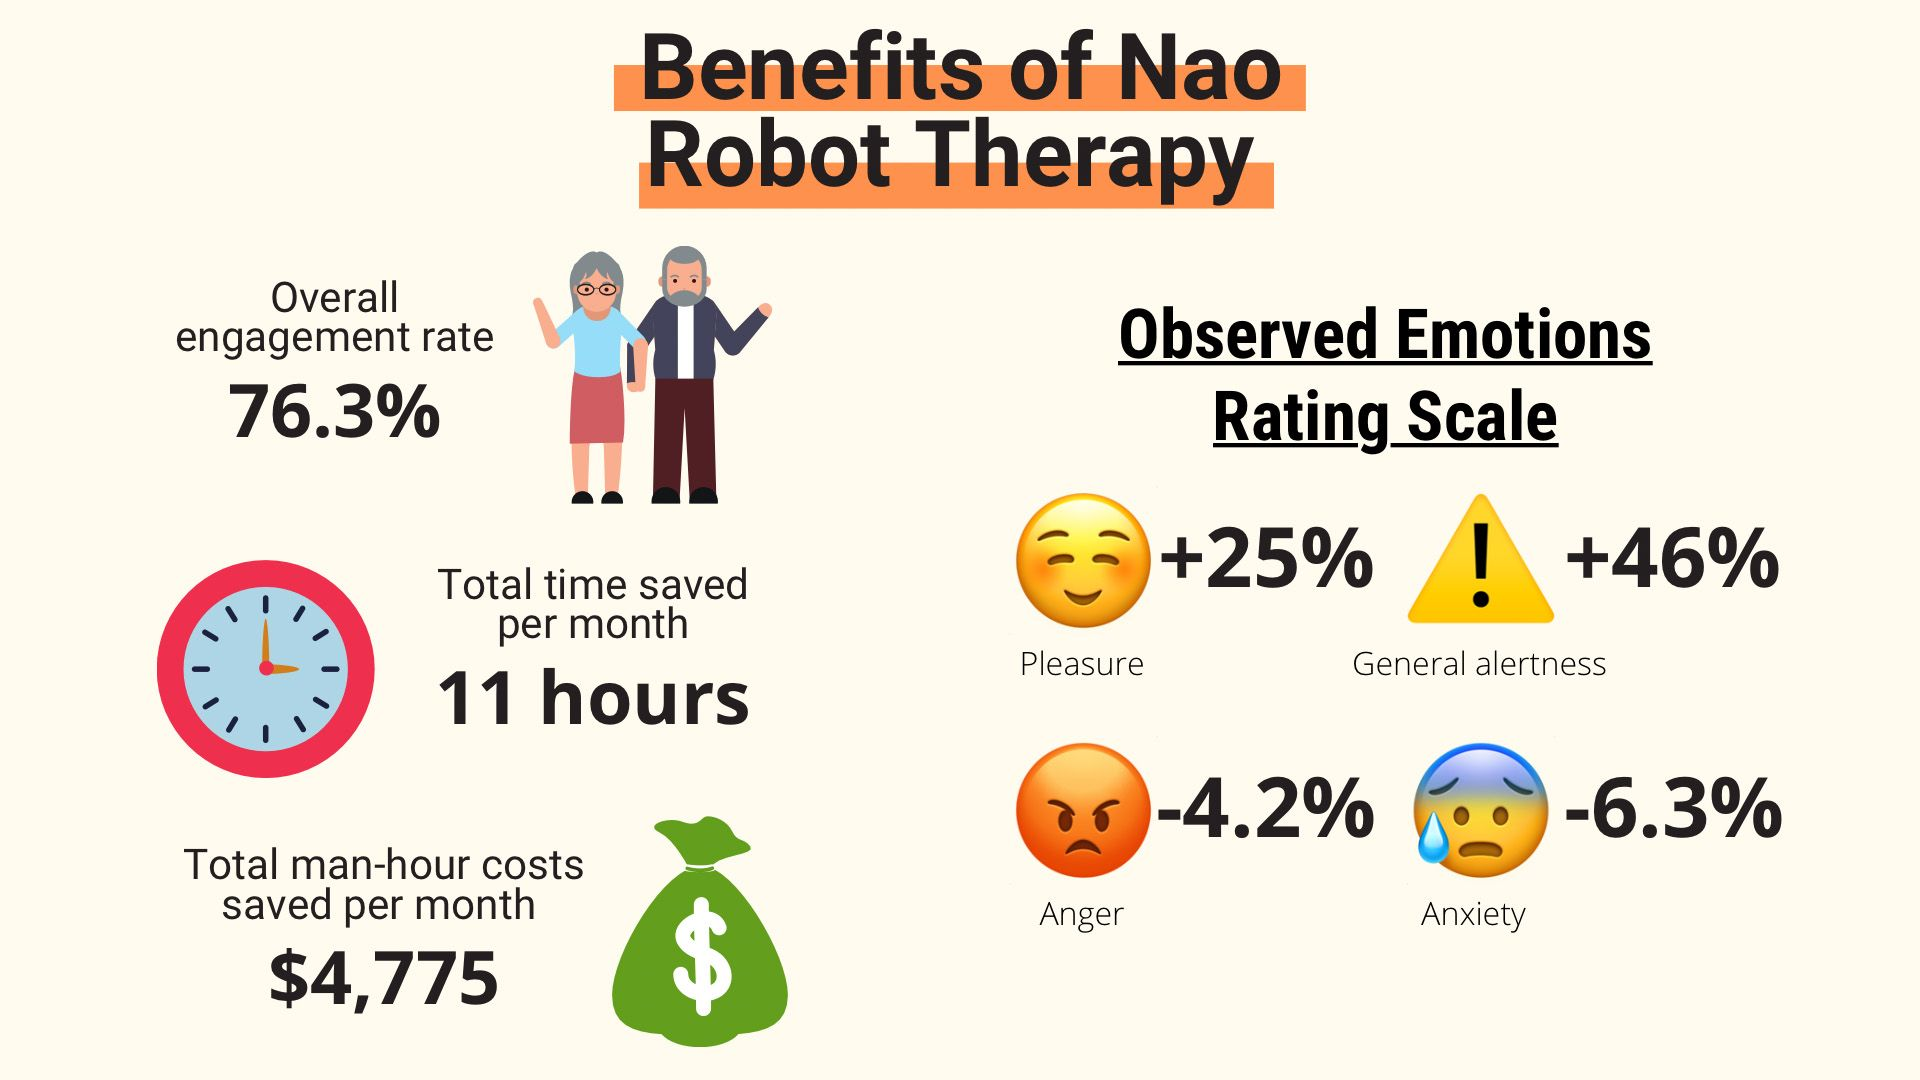 Results of Nao robot being used in therapy for seniors at Yishun Community Hospital in Singapore.